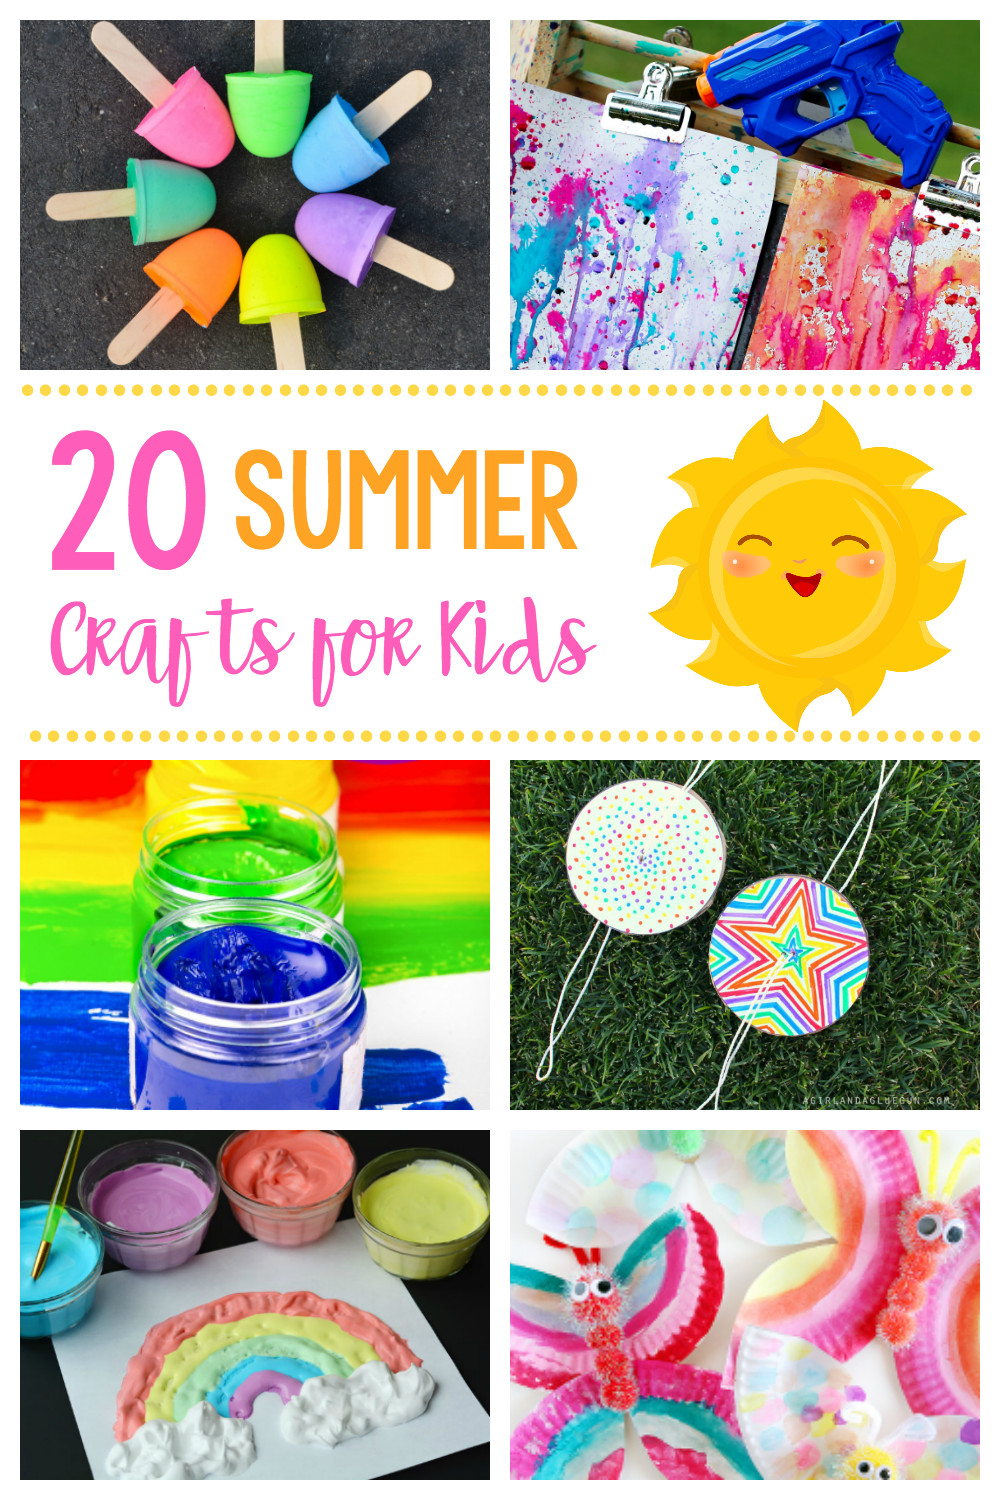 Best ideas about Simple Activities For Kids . Save or Pin 20 Simple & Fun Summer Crafts for Kids Now.